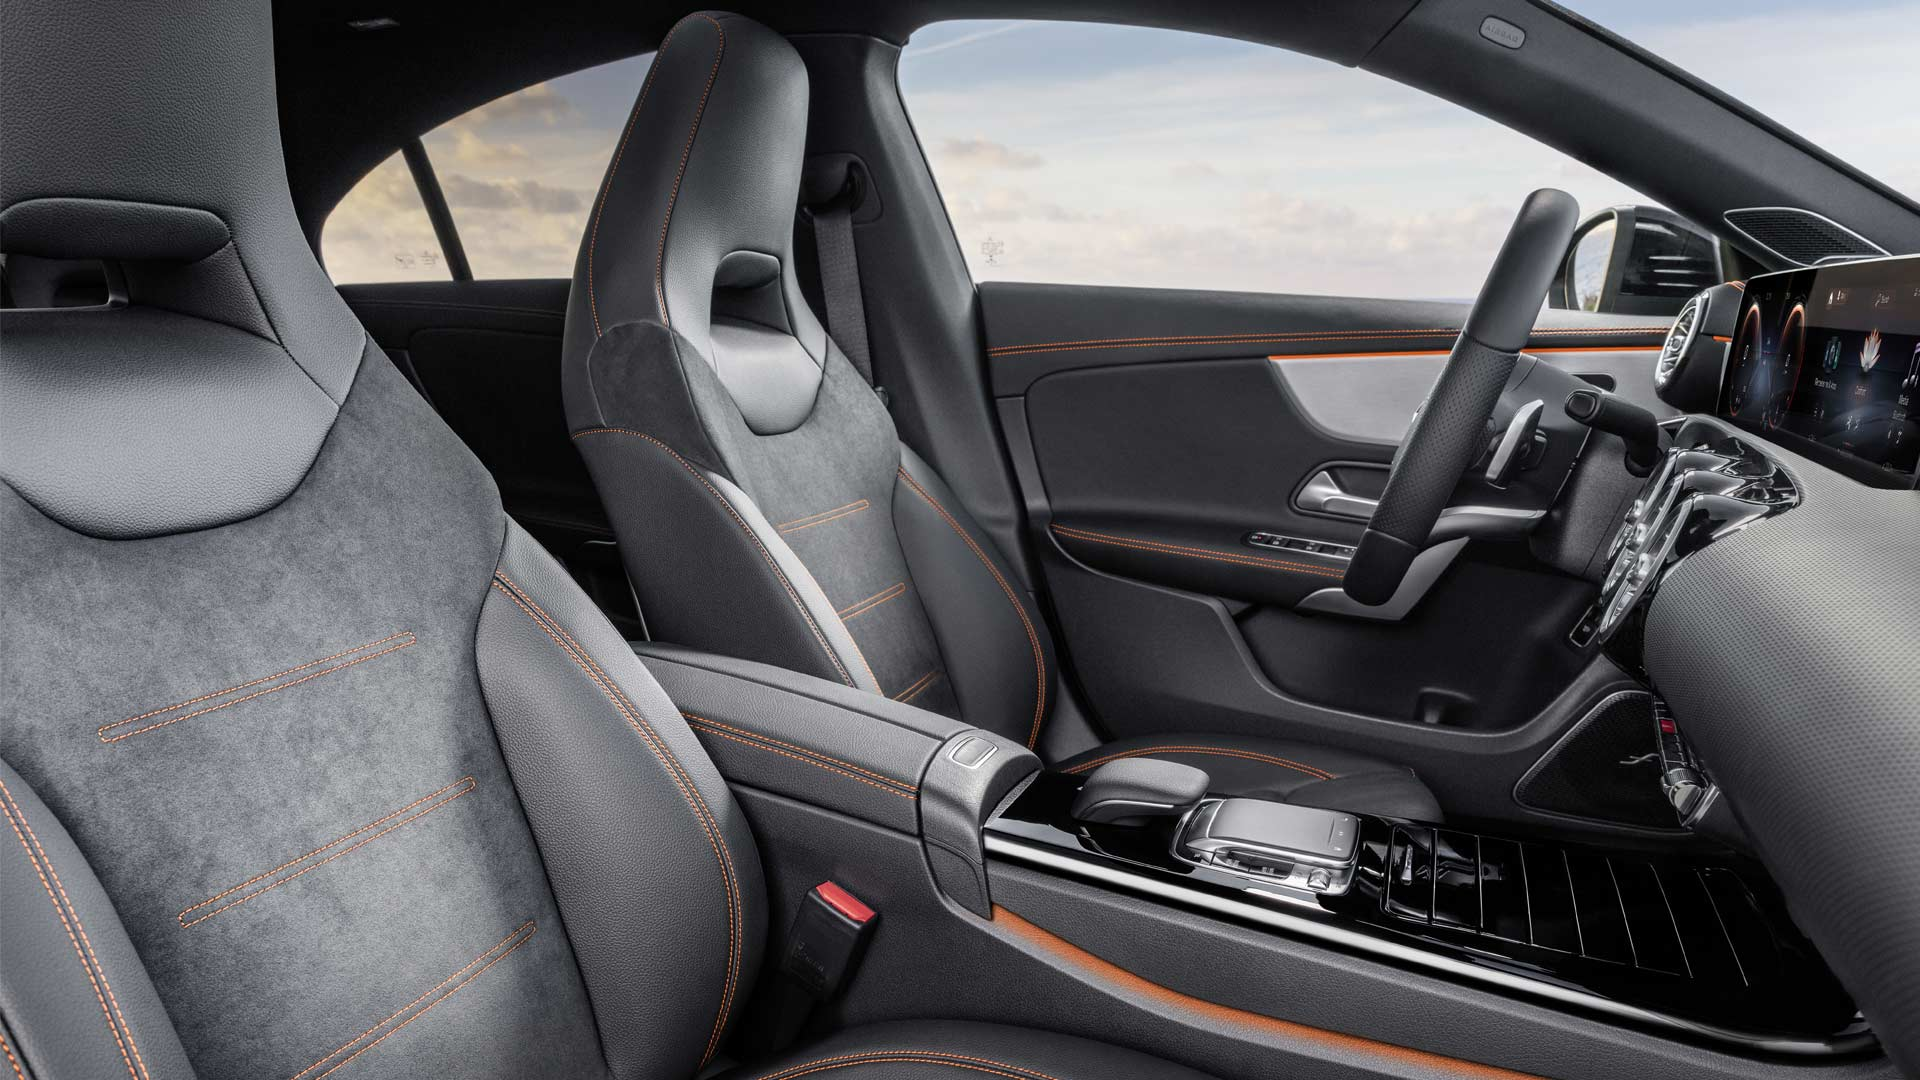 second generation 2020-Mercedes-Benz-CLA-Coupé-Edition 1 Interior_3